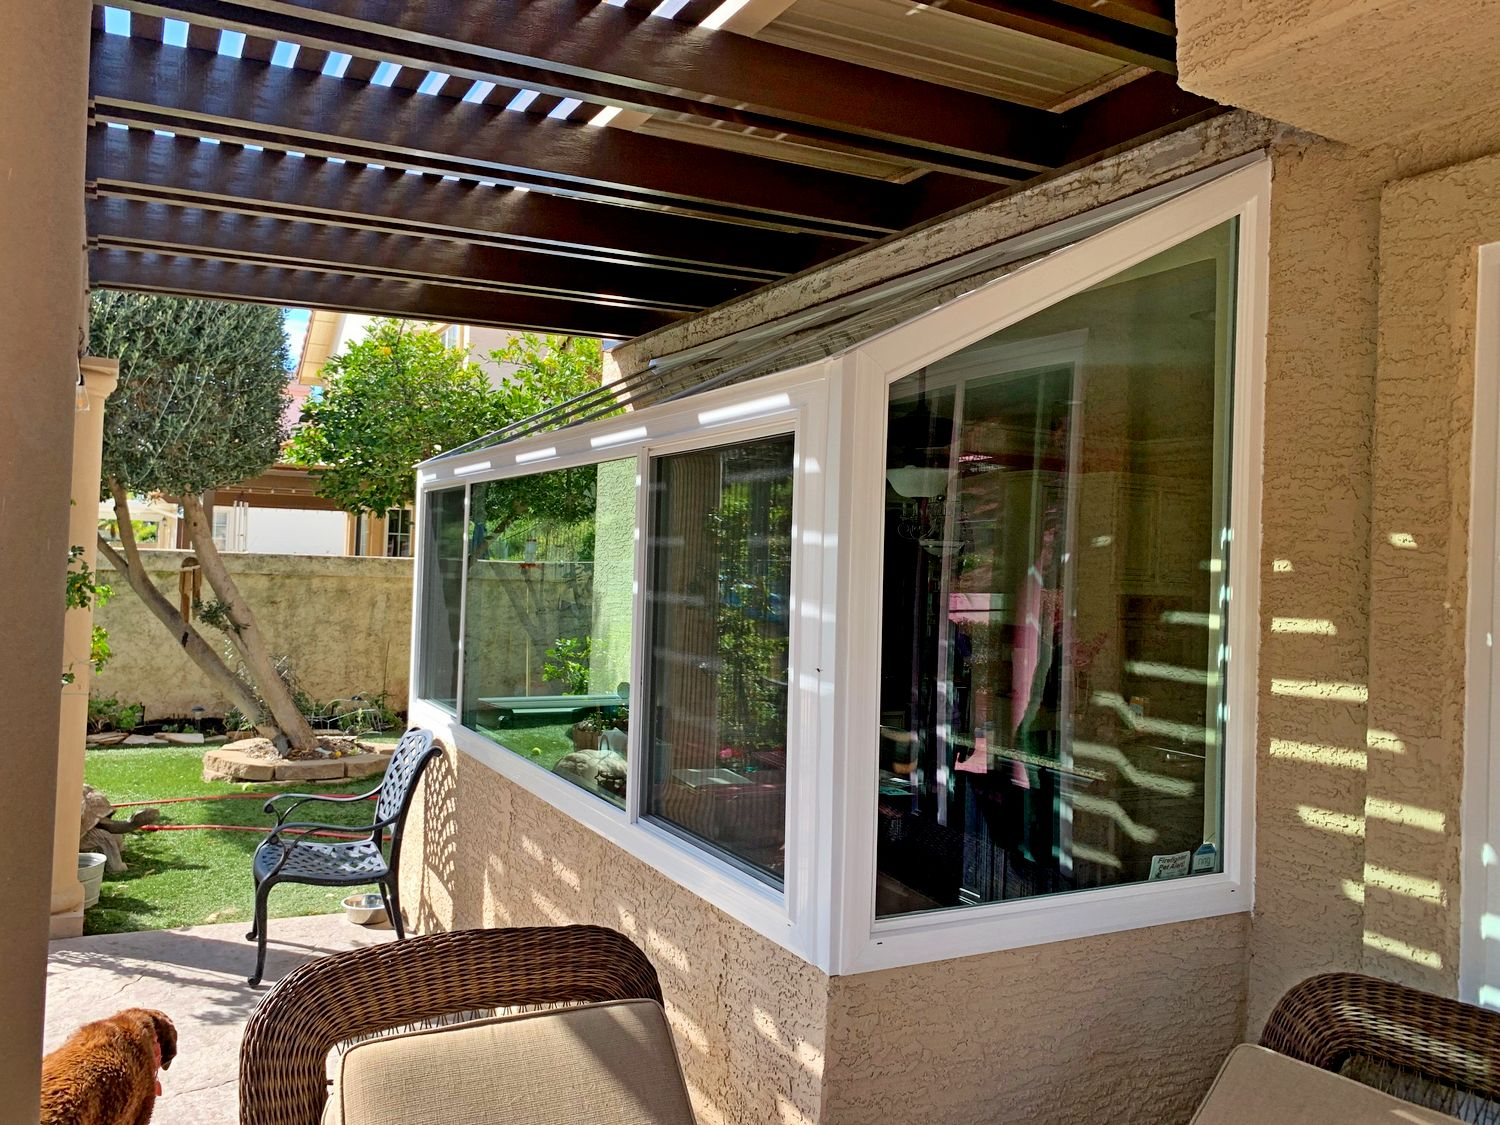 Windows Replacement Project in Temecula